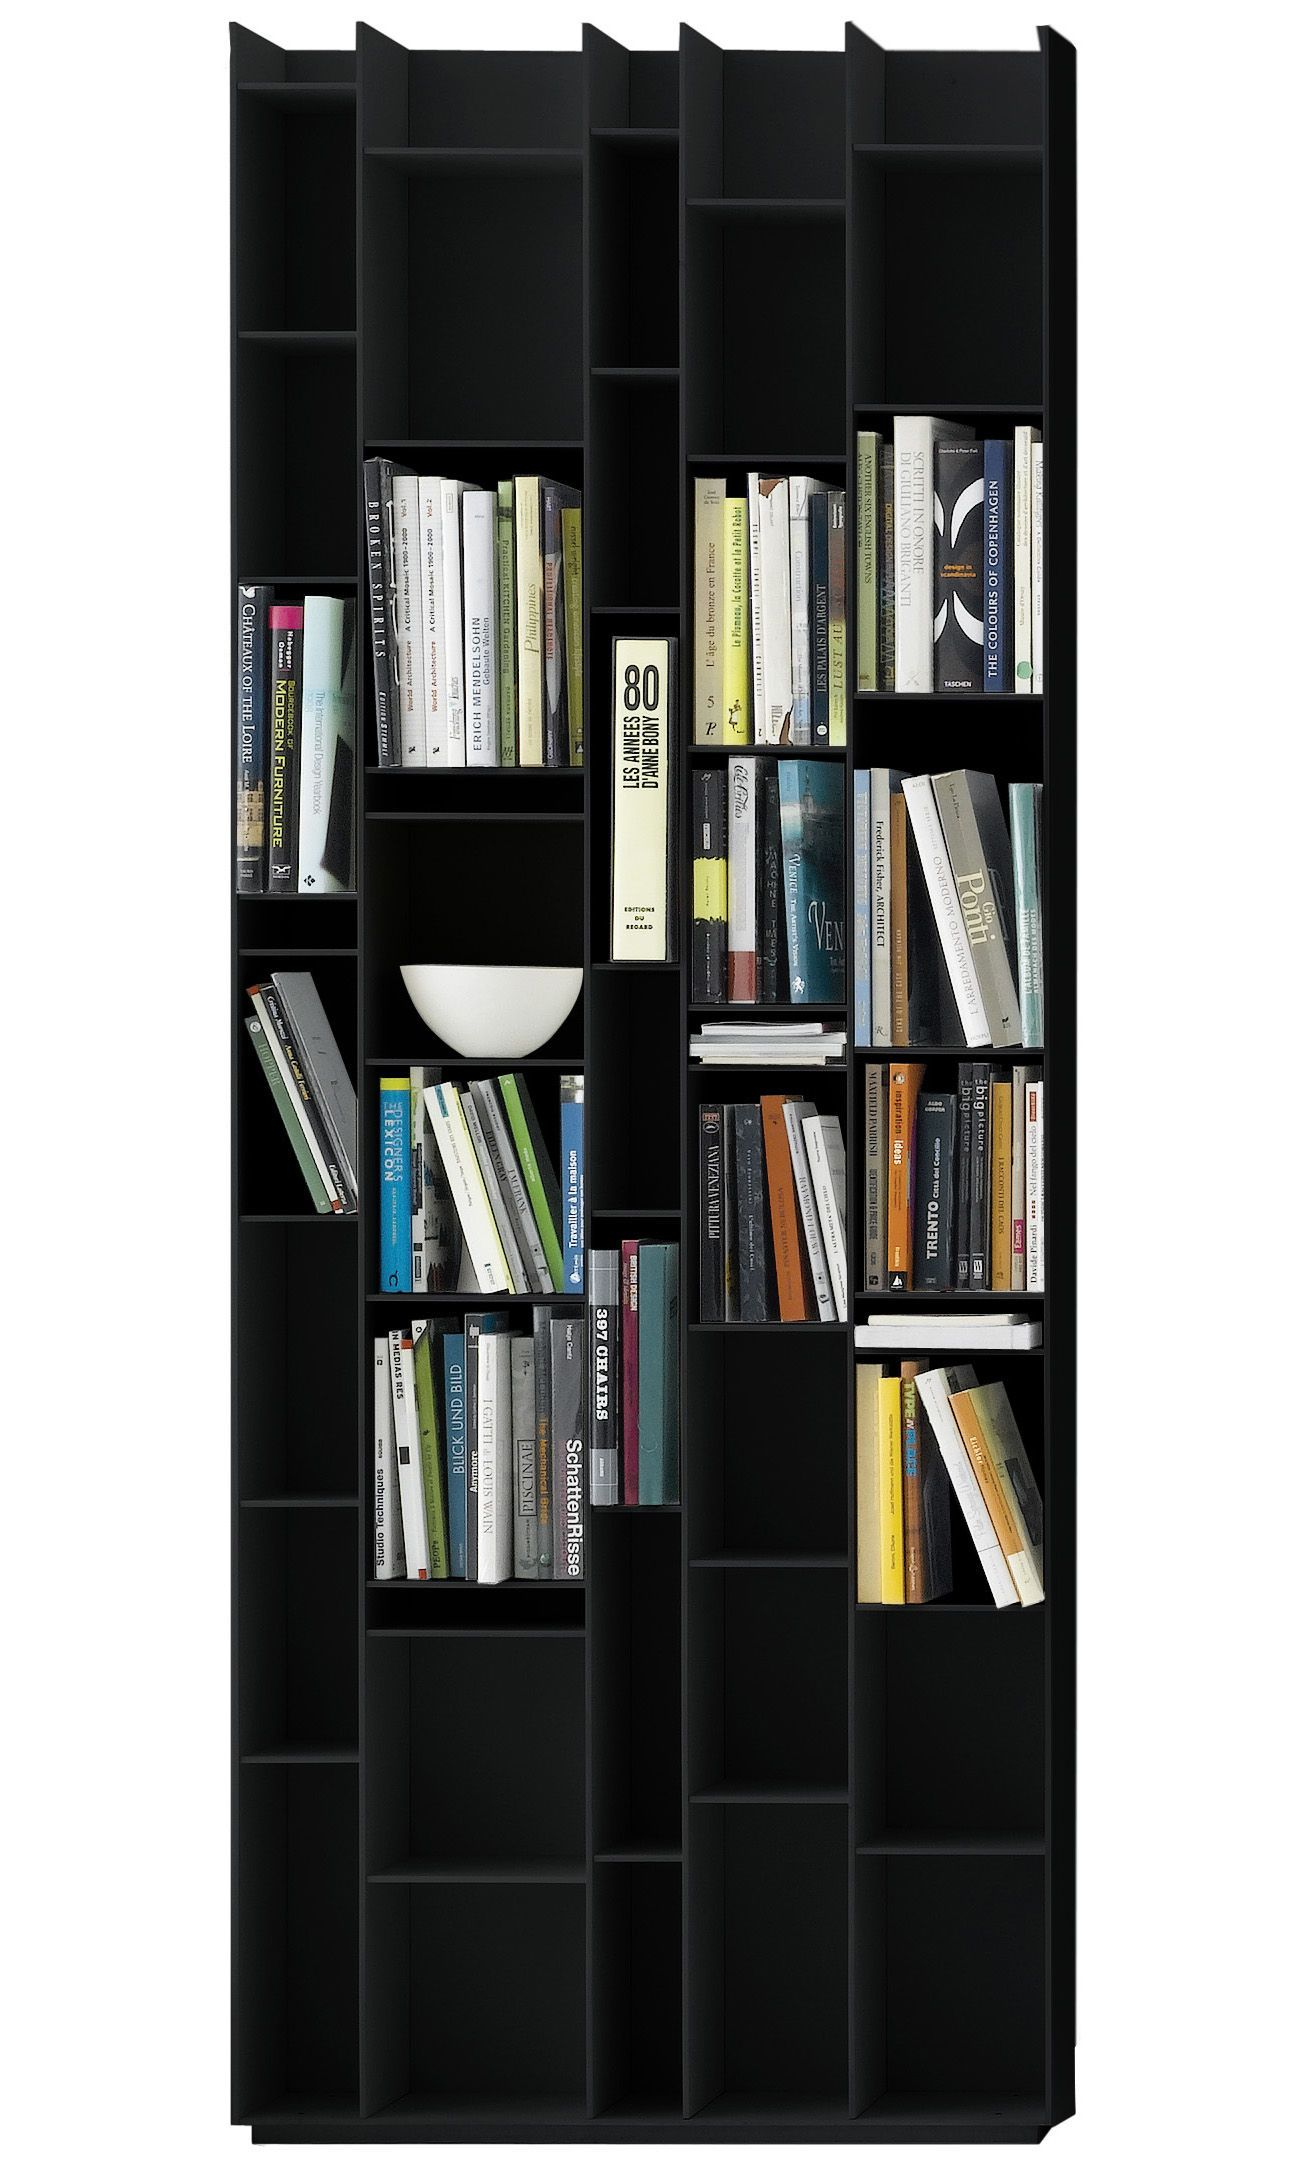 pin the style house godfather to unique bookcase of beauty bookcases ur enhance bookshelf ideas